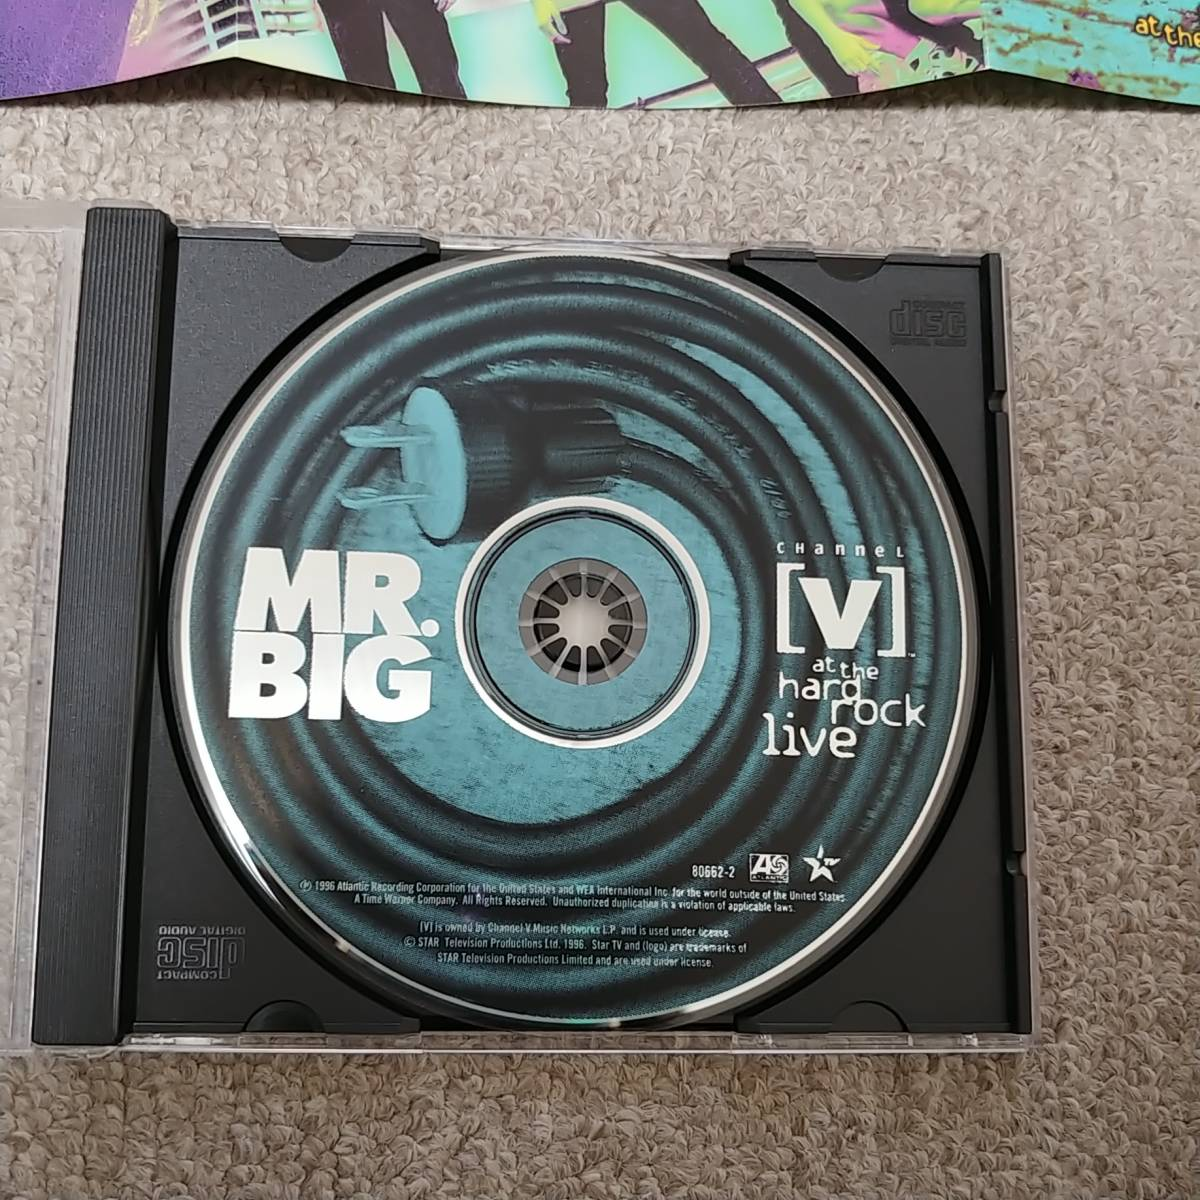 at the hard rock live / Mr.BIG 輸入盤 アット・ザ・ハード・ロック・ライブ/ミスター・ビッグ